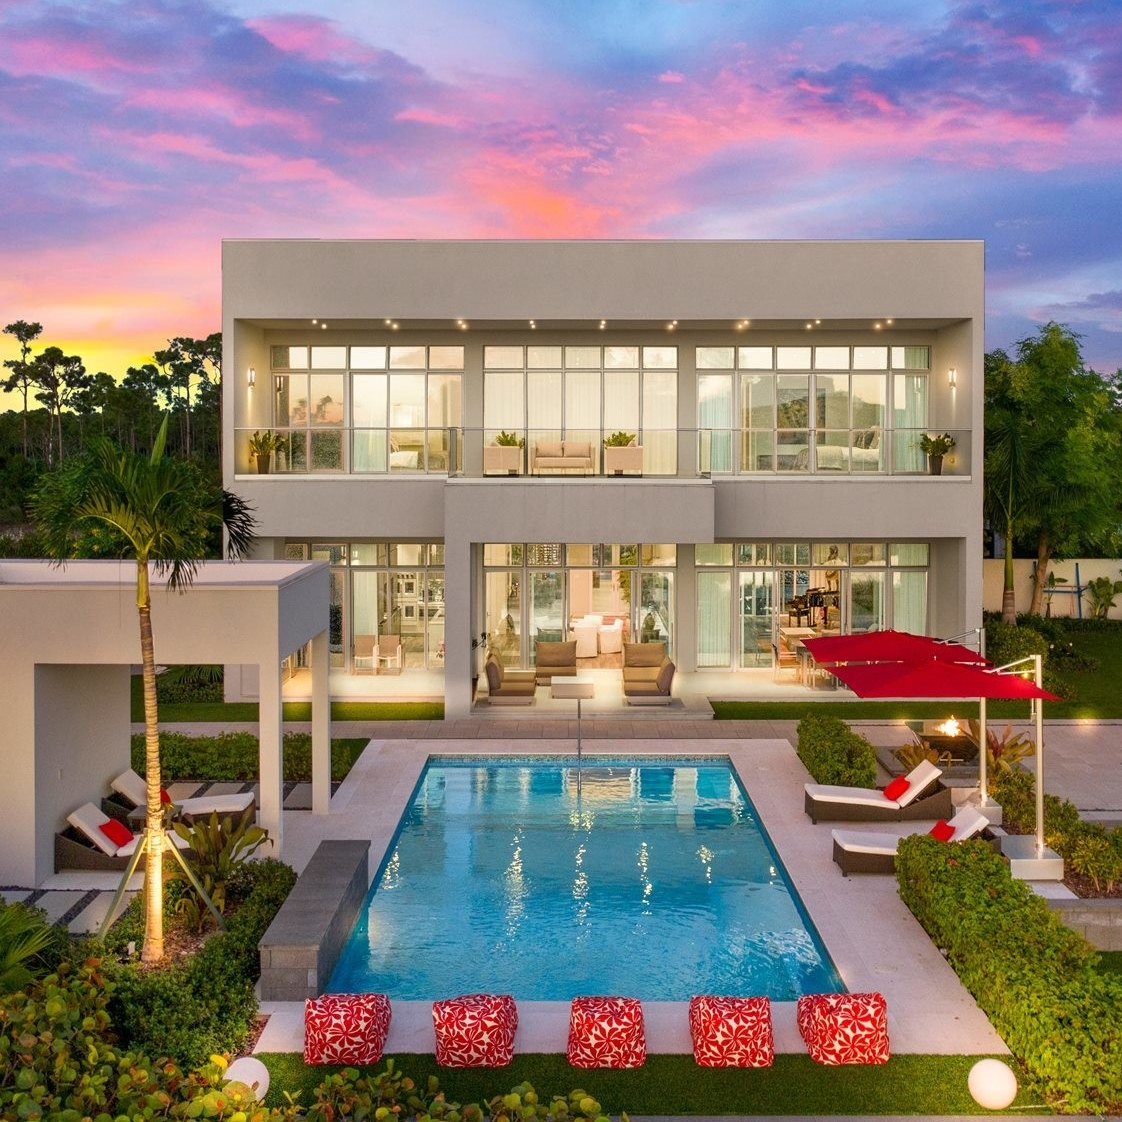 Best place to buy property in the bahamas: In Vino Veritas in the gated community of Albany, $6,995,000